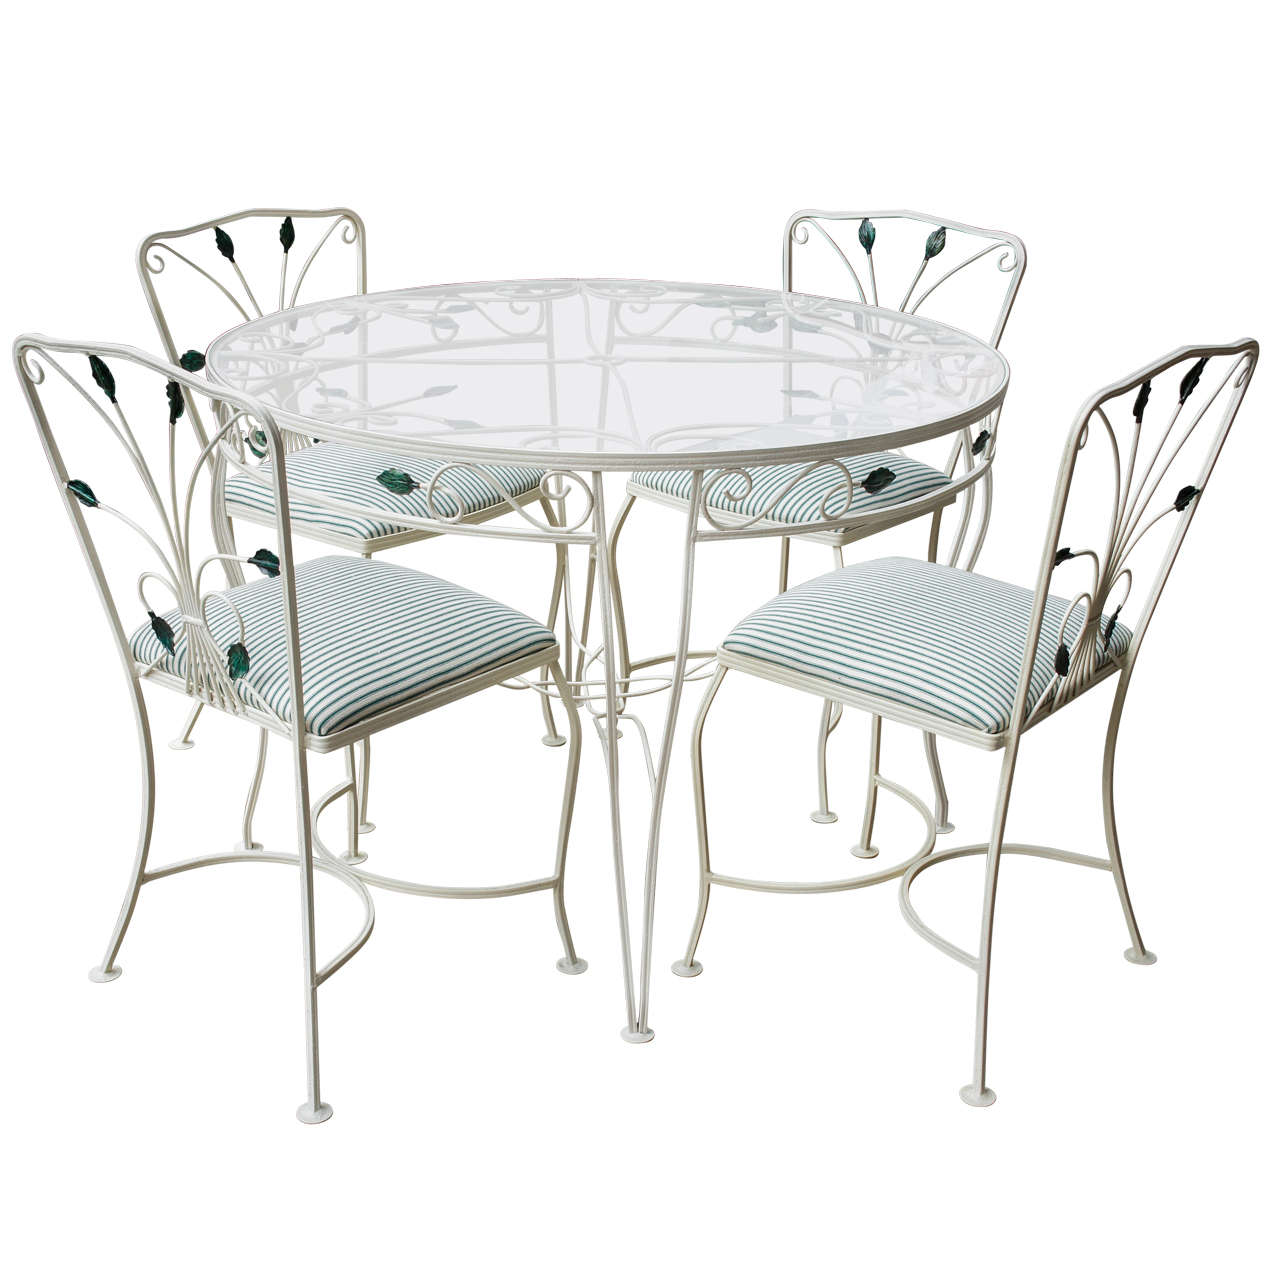 A vintage woodard iron dining set for sale at 1stdibs for Woodard outdoor furniture